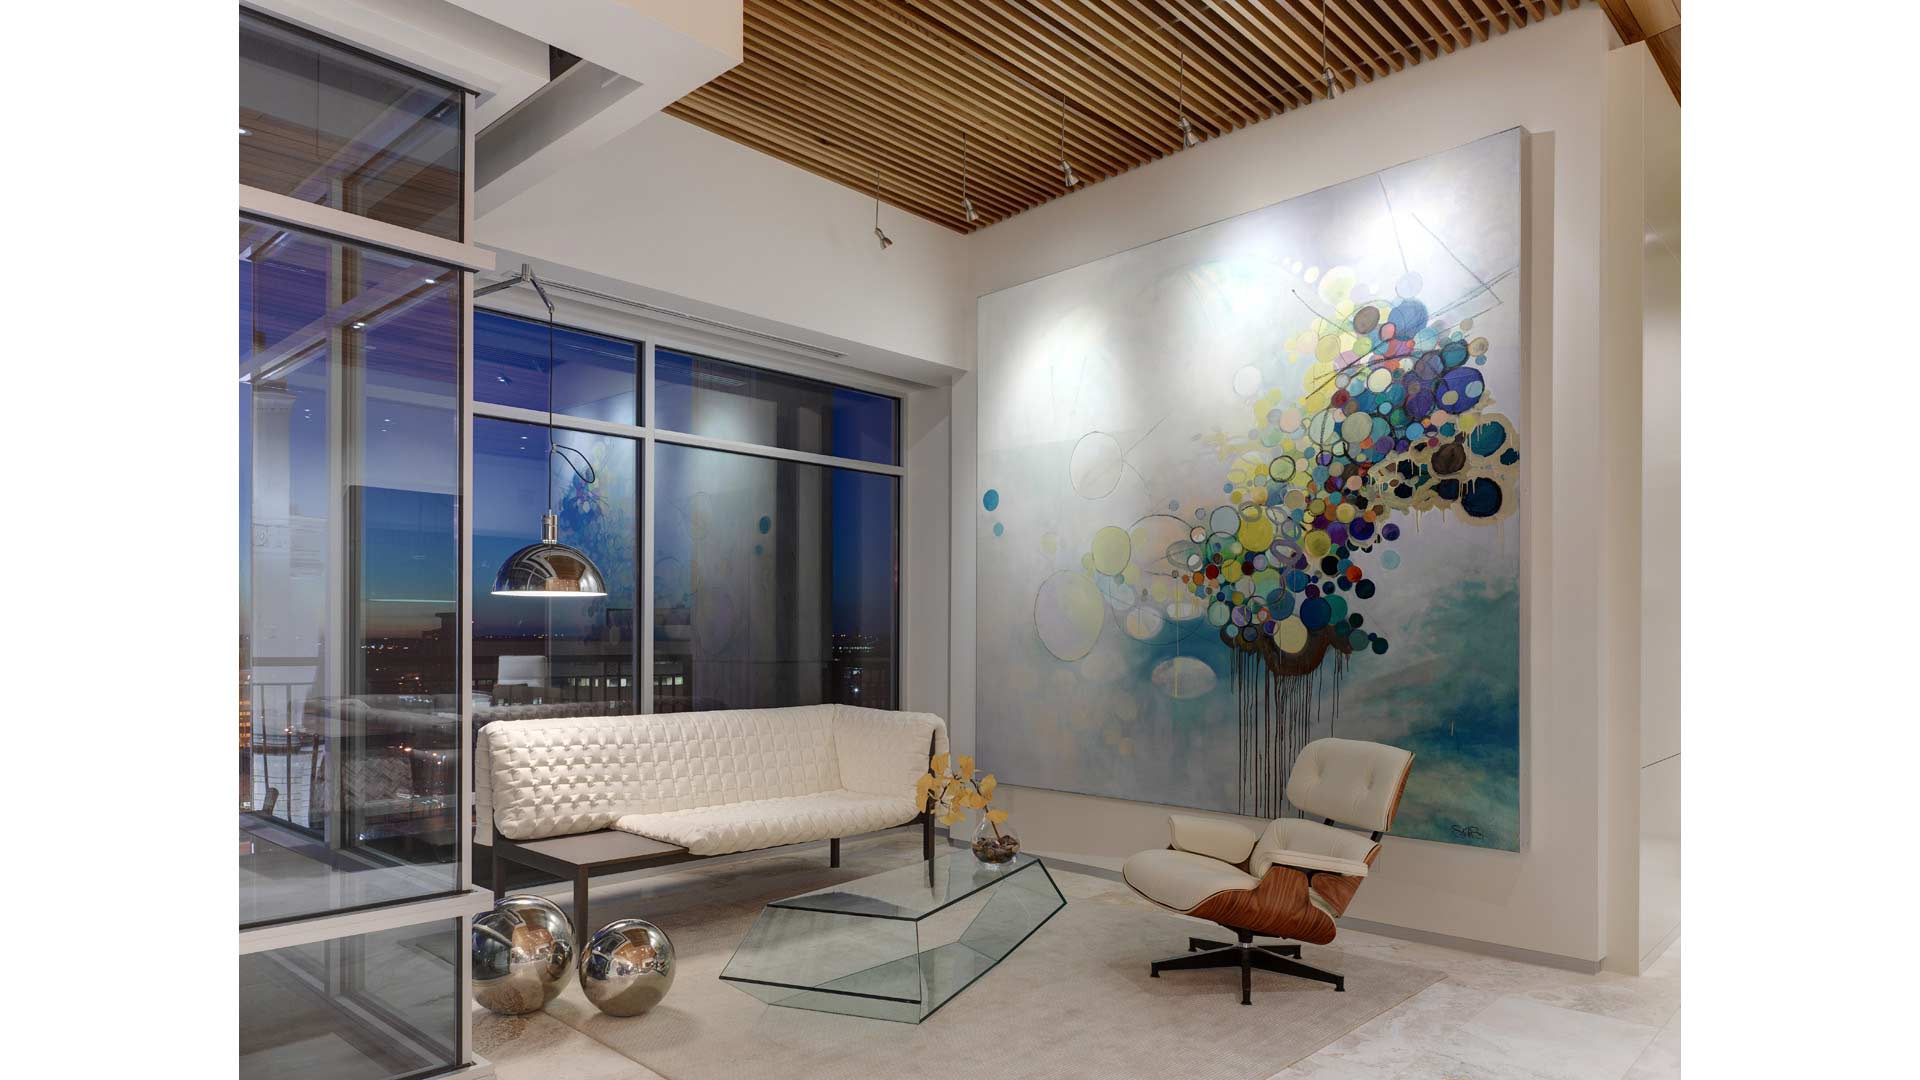 Adagio Penthouse Interior - Massive Art Wall Detail - HAUS Architecture, Christopher Short, Indianapolis Architect